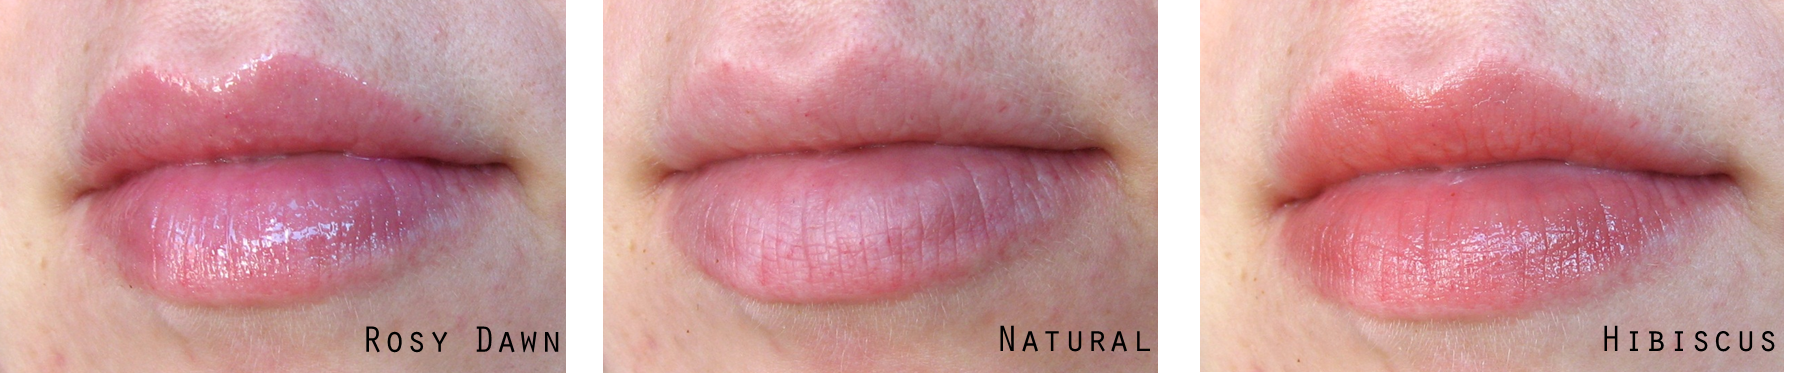 The Bees! OMG, The Bees! – Burt's Bees Lip Gloss in #233 ...